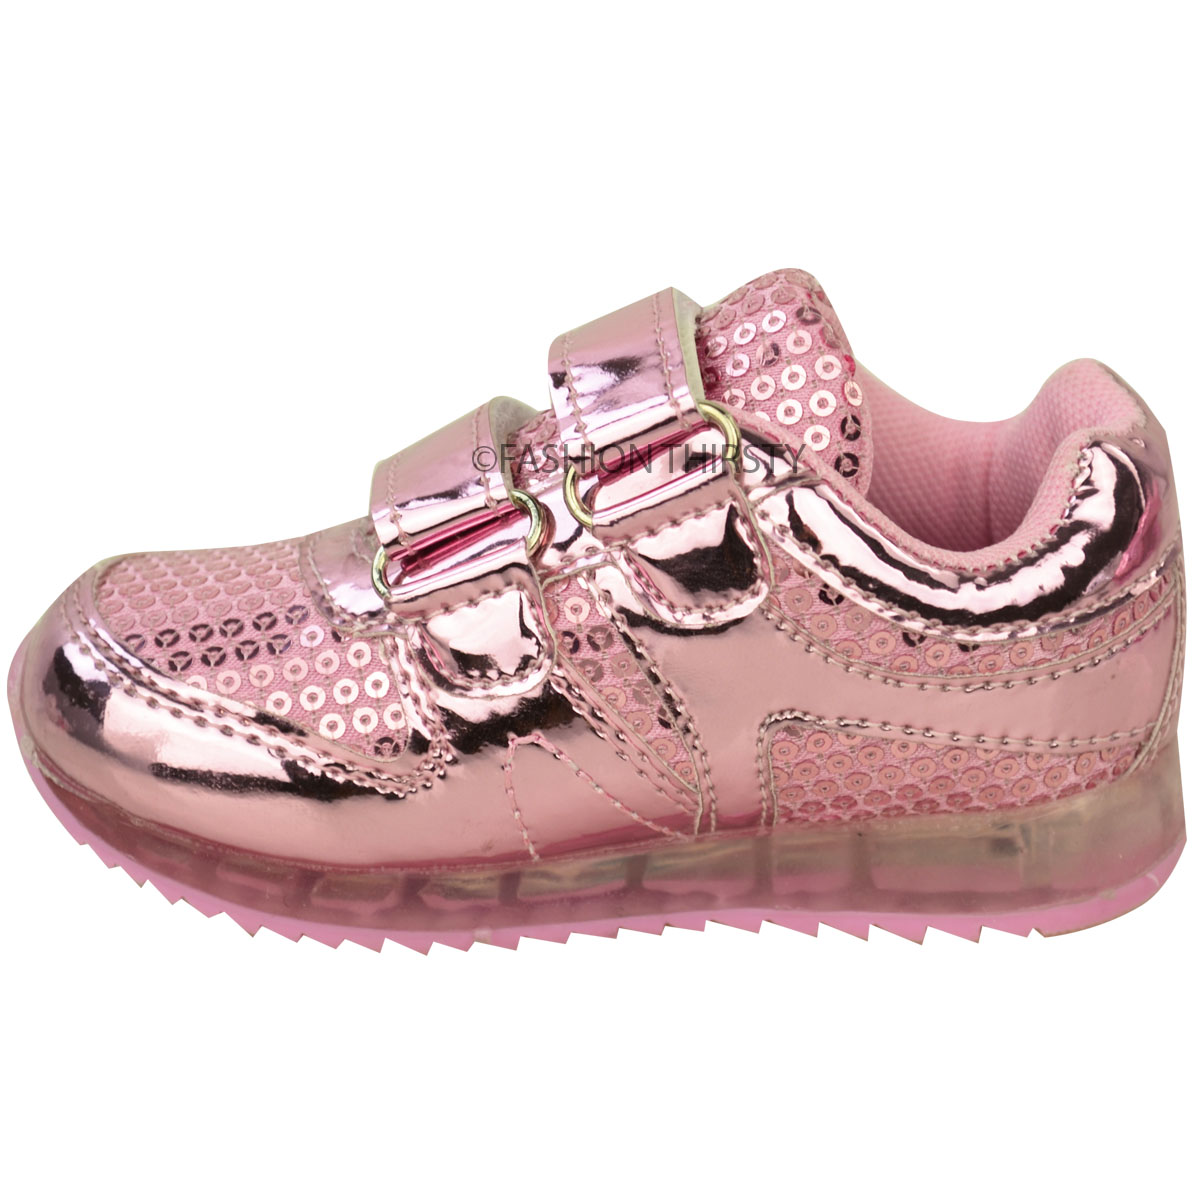 Light Up Shoes For Toddler Girl Size